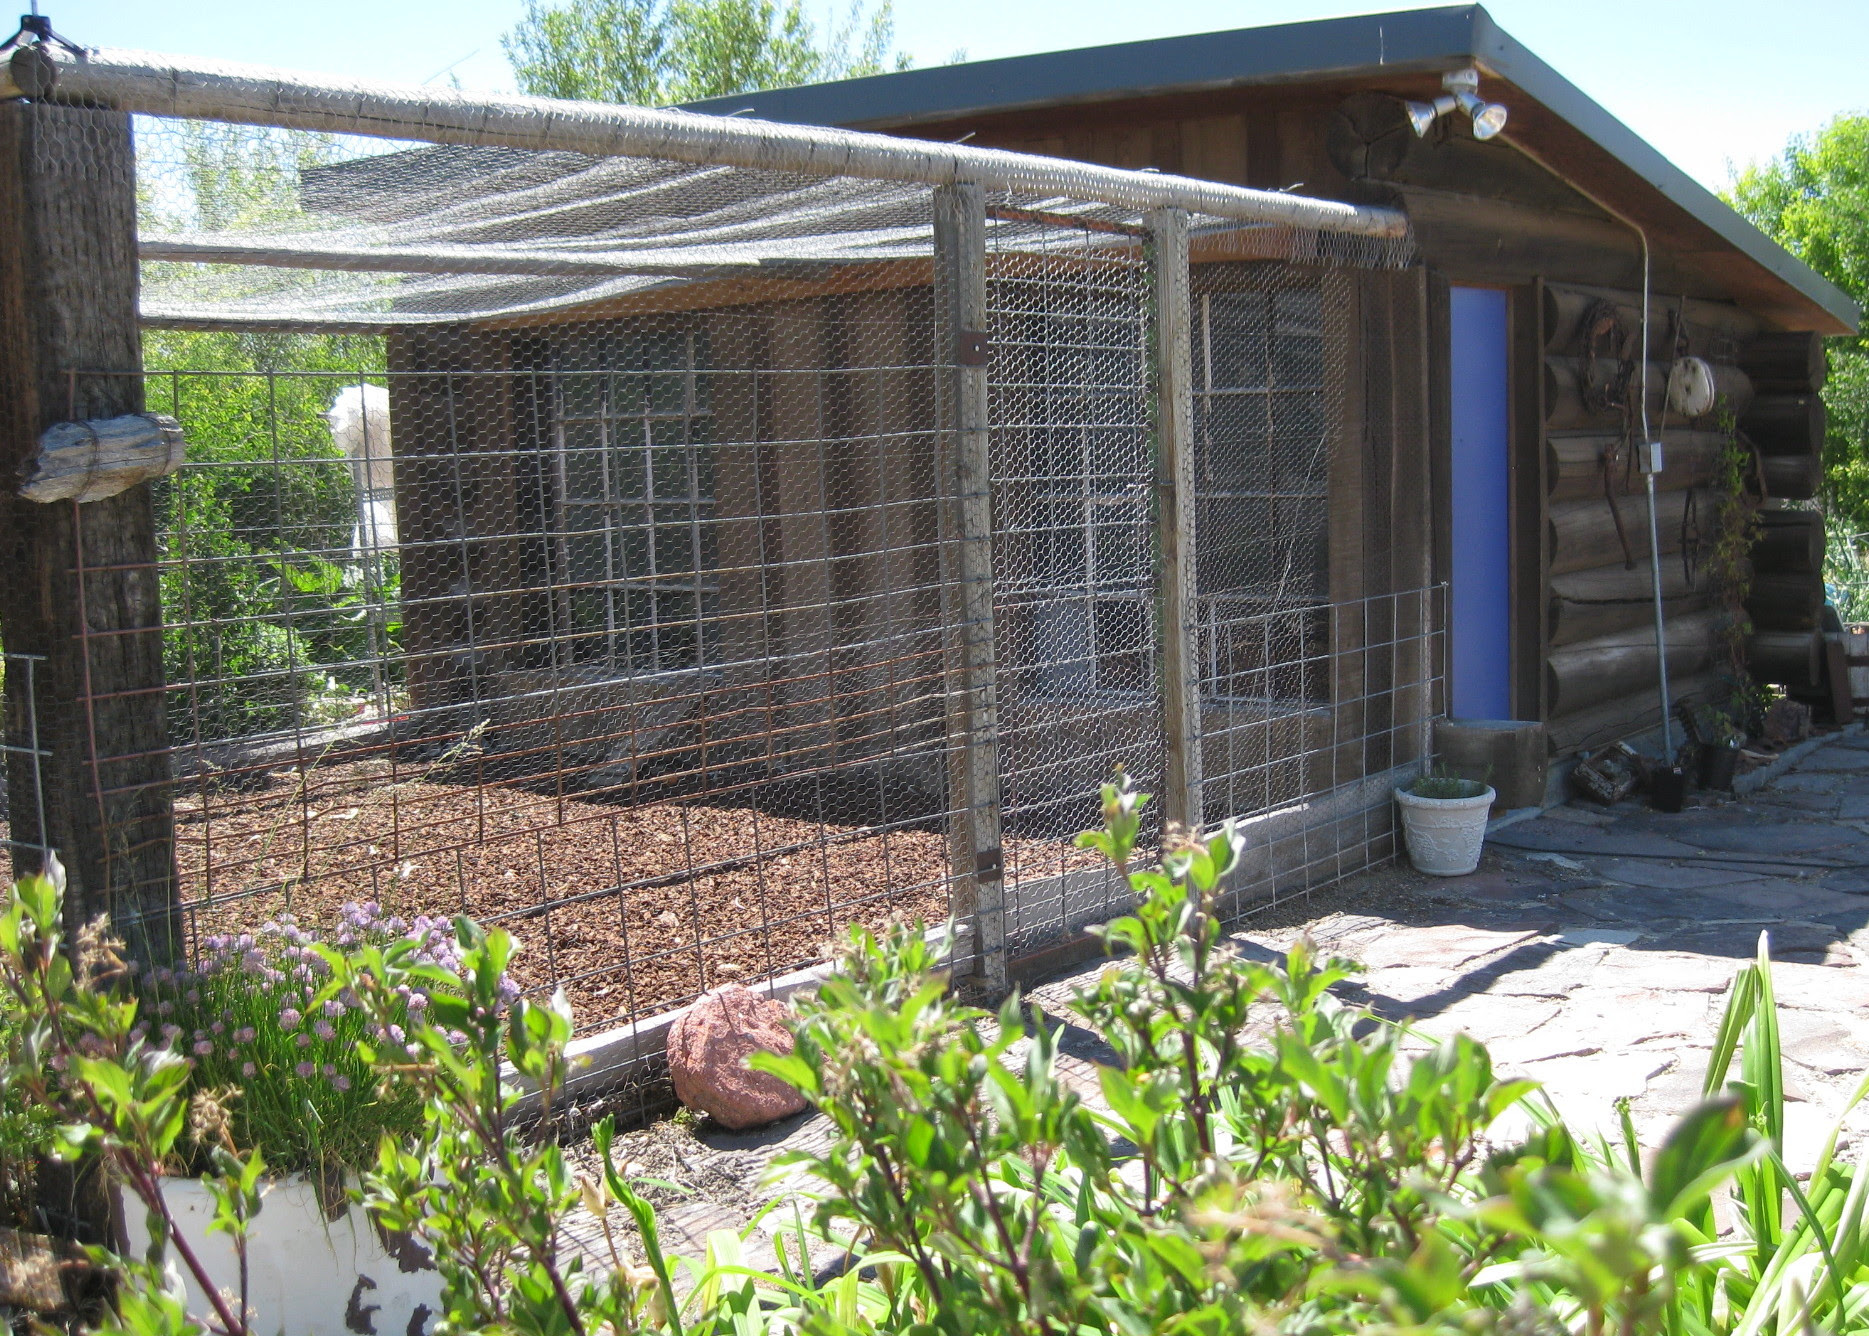 How To Build A Poultry House For Layers Design Your Own Chicken Coop